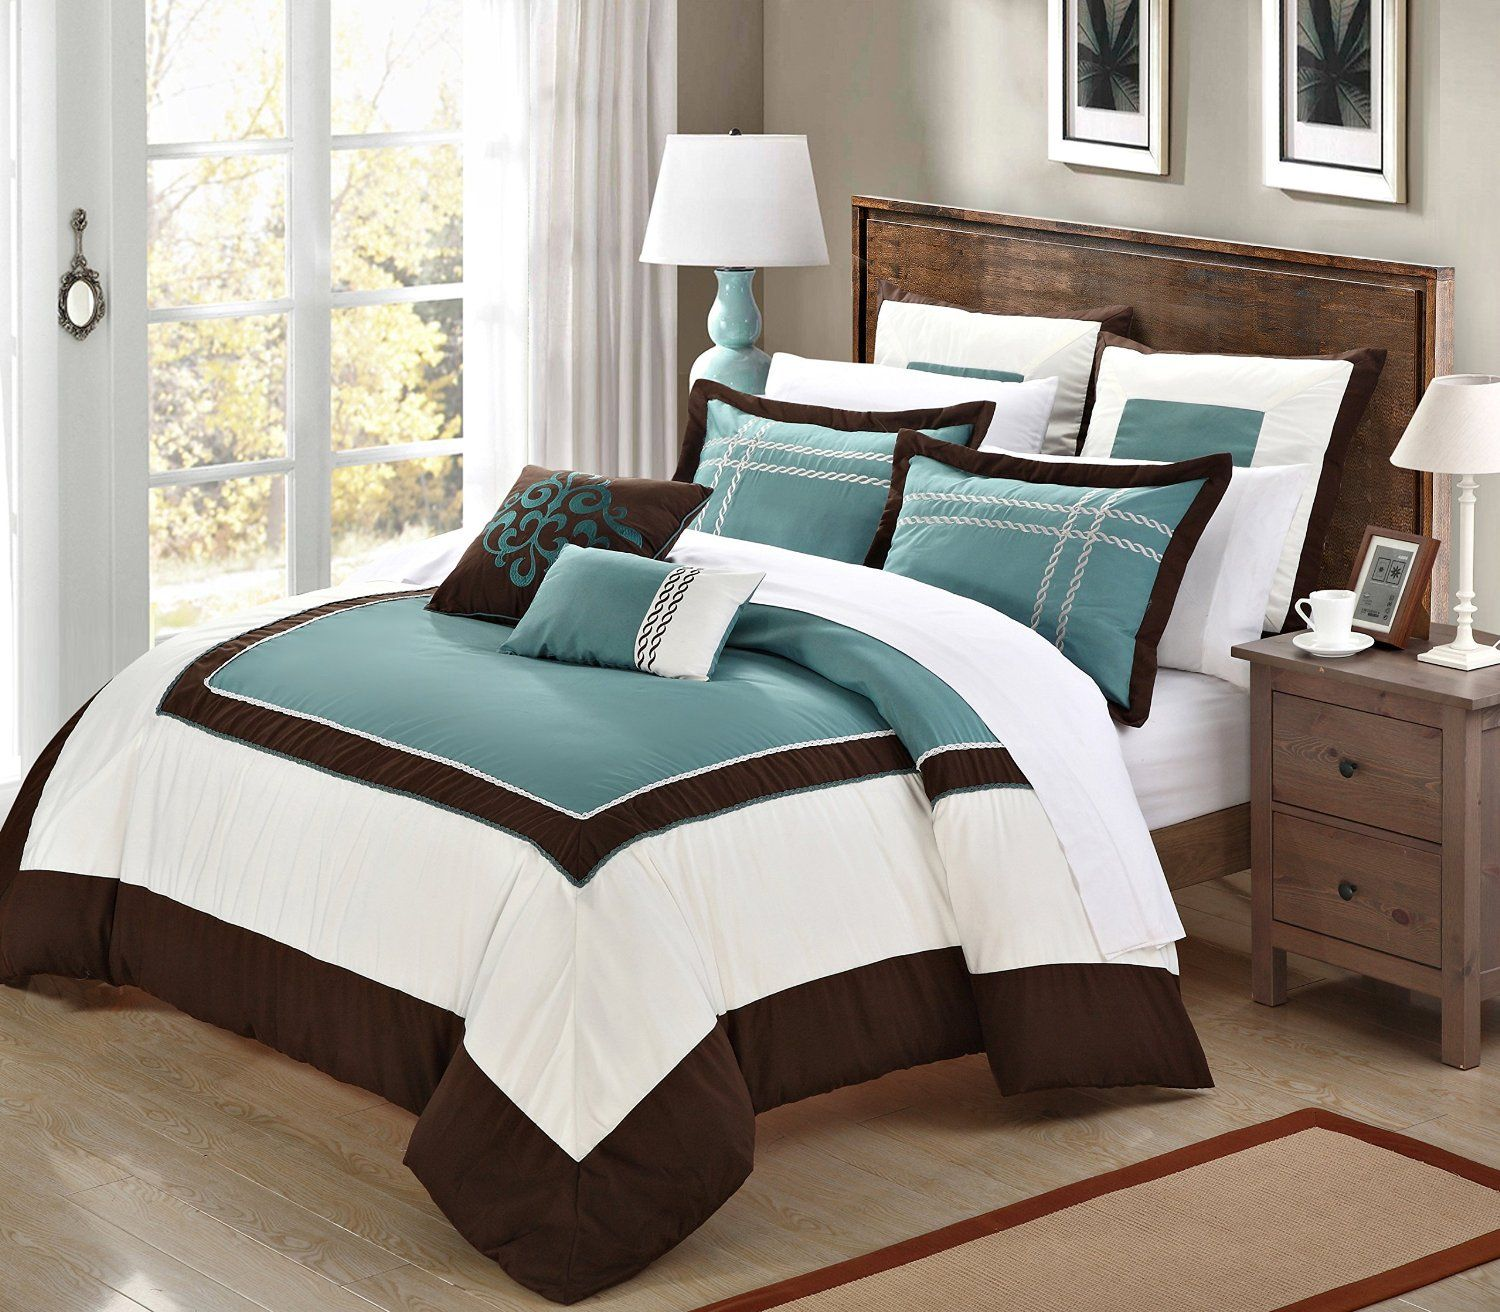 Blue and brown bedroom decor - Victoria Classics Blue Brown Daniella Comforter Set Classic Blue Brown And Comforter Sets